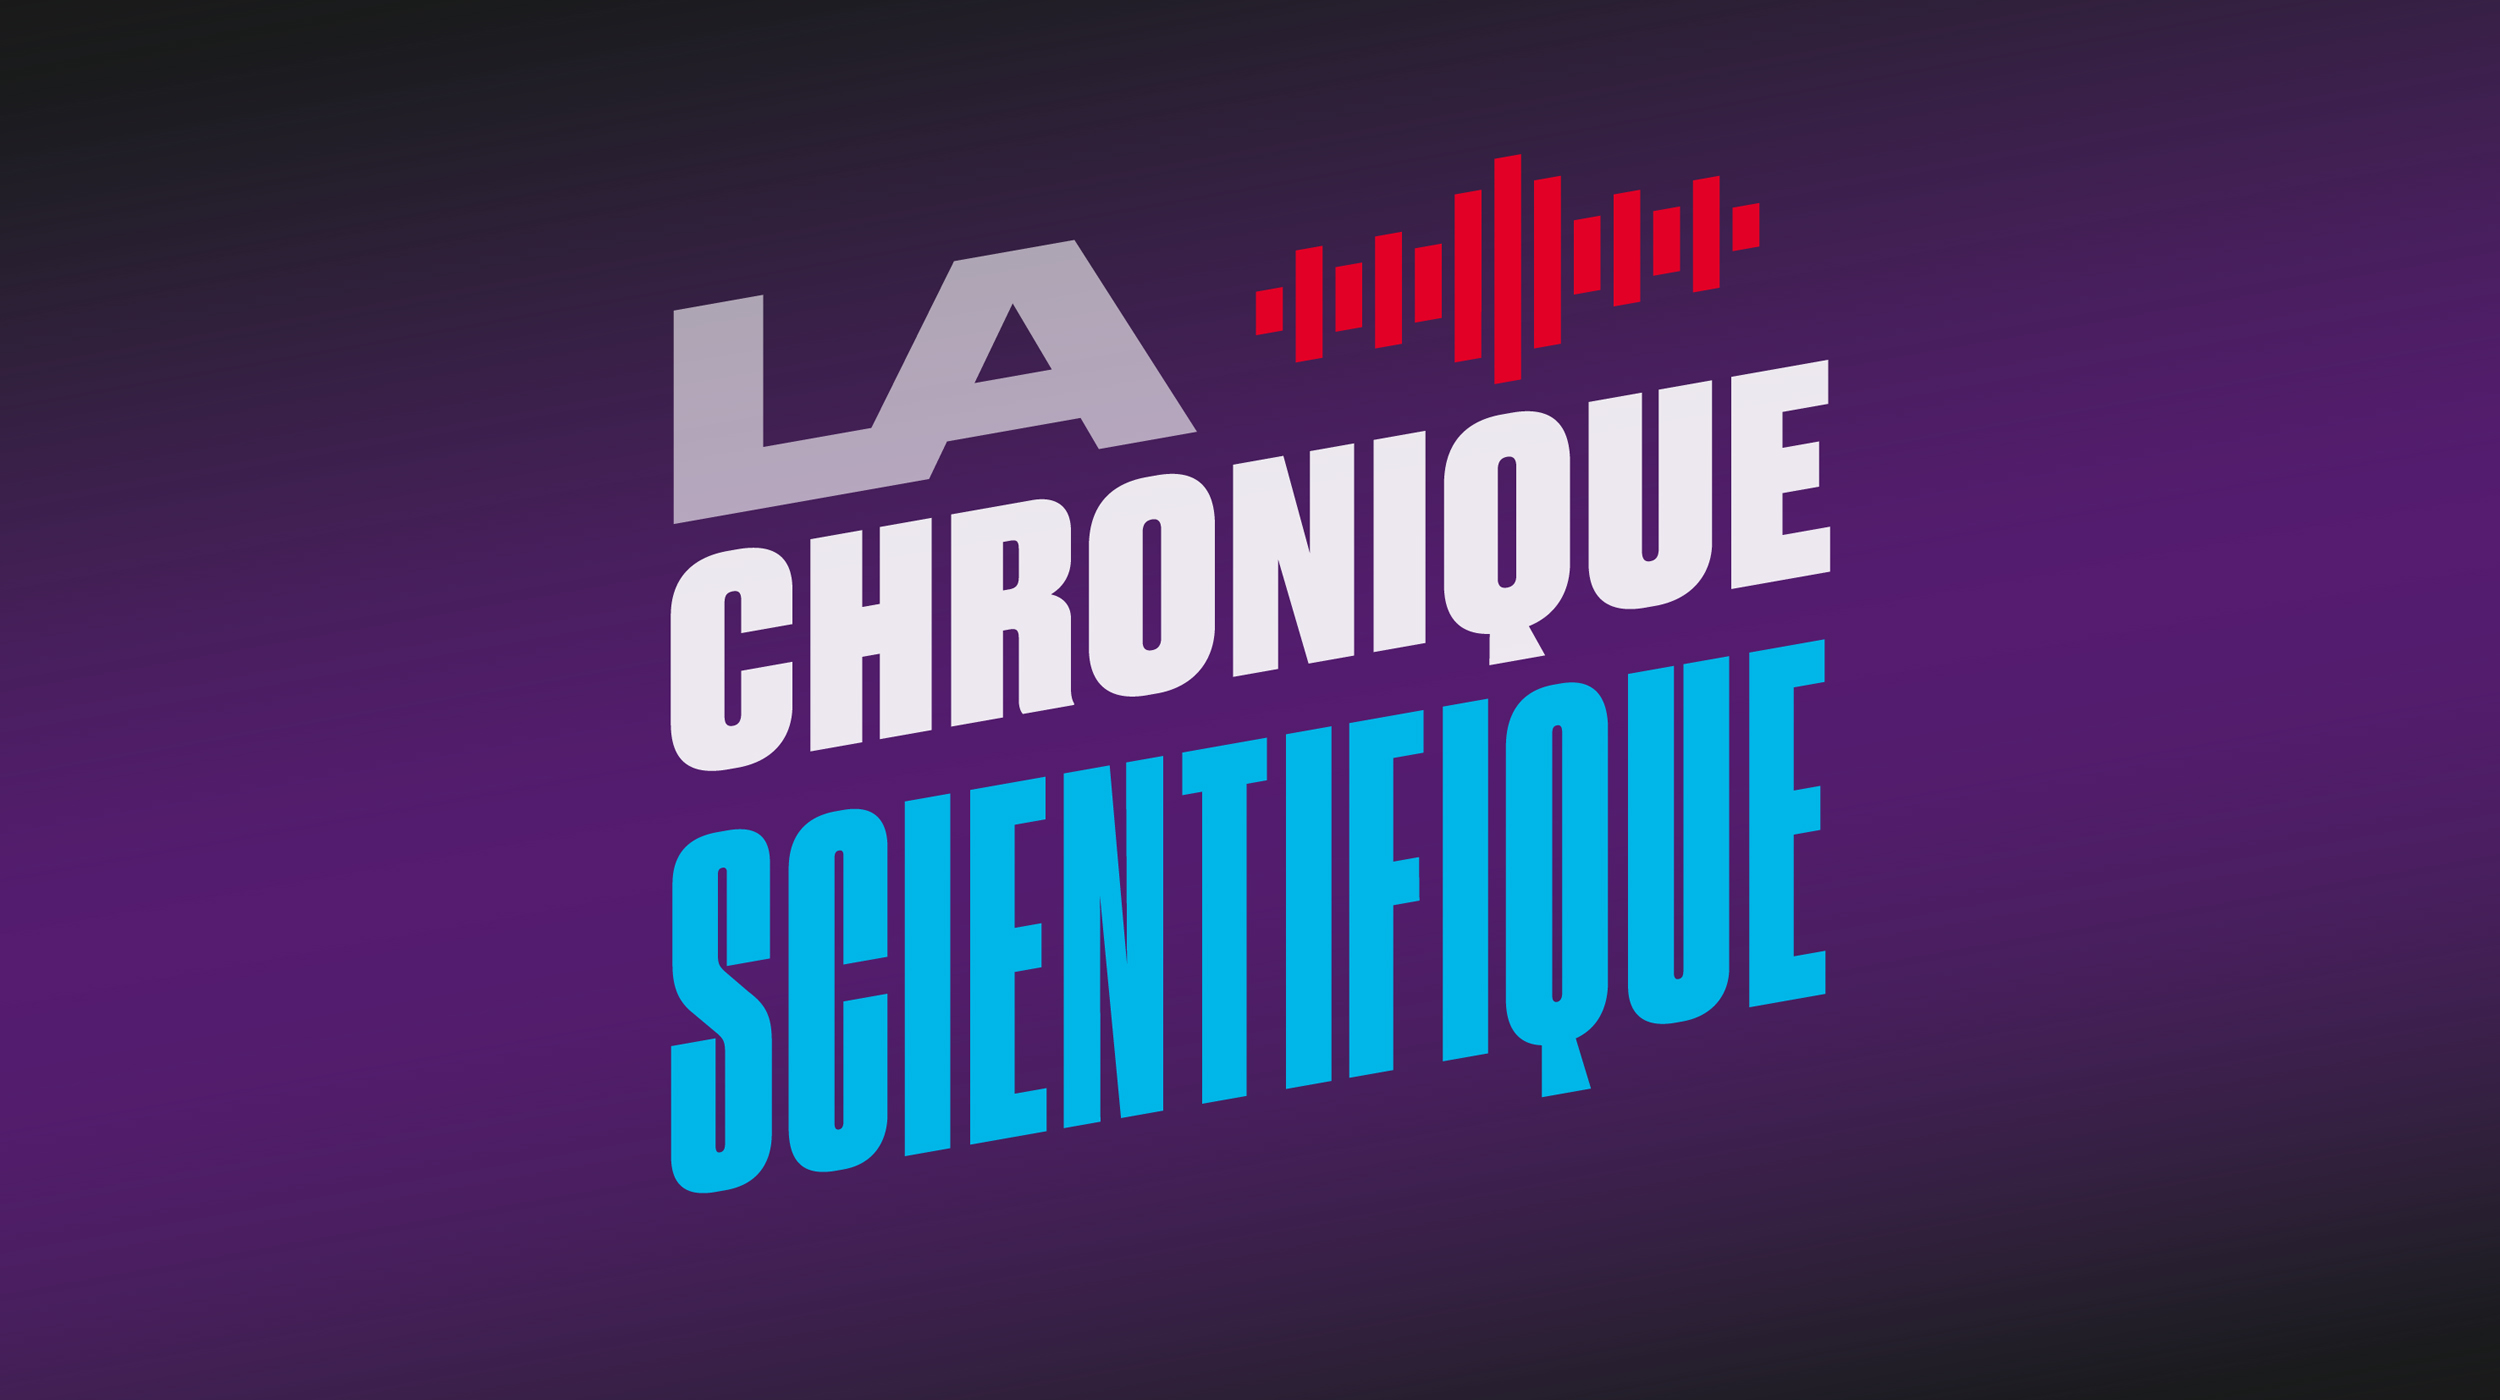 Chronique scientifique